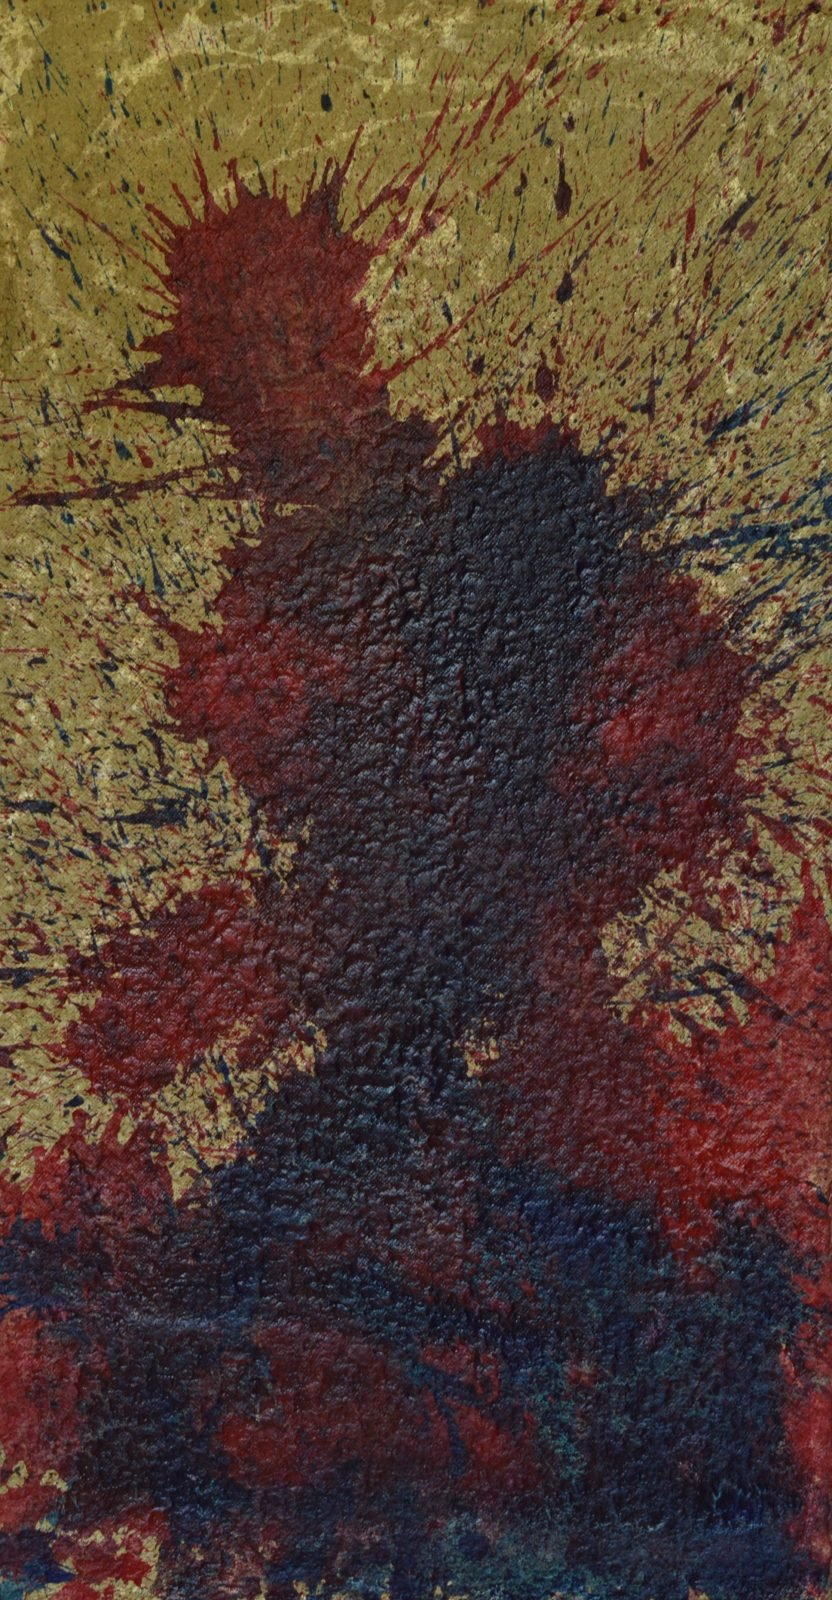 Uprising is an unusually violent image. A figure emerges from a maelstrom of red and blue against a gold background. Shaking with energy and raw anger, this acrylic on thick 600gsm handmade Moulin de Larroque paper measures 108cm high and 58cm wide. Part of the Day the Sky Shattered and Flew Away series